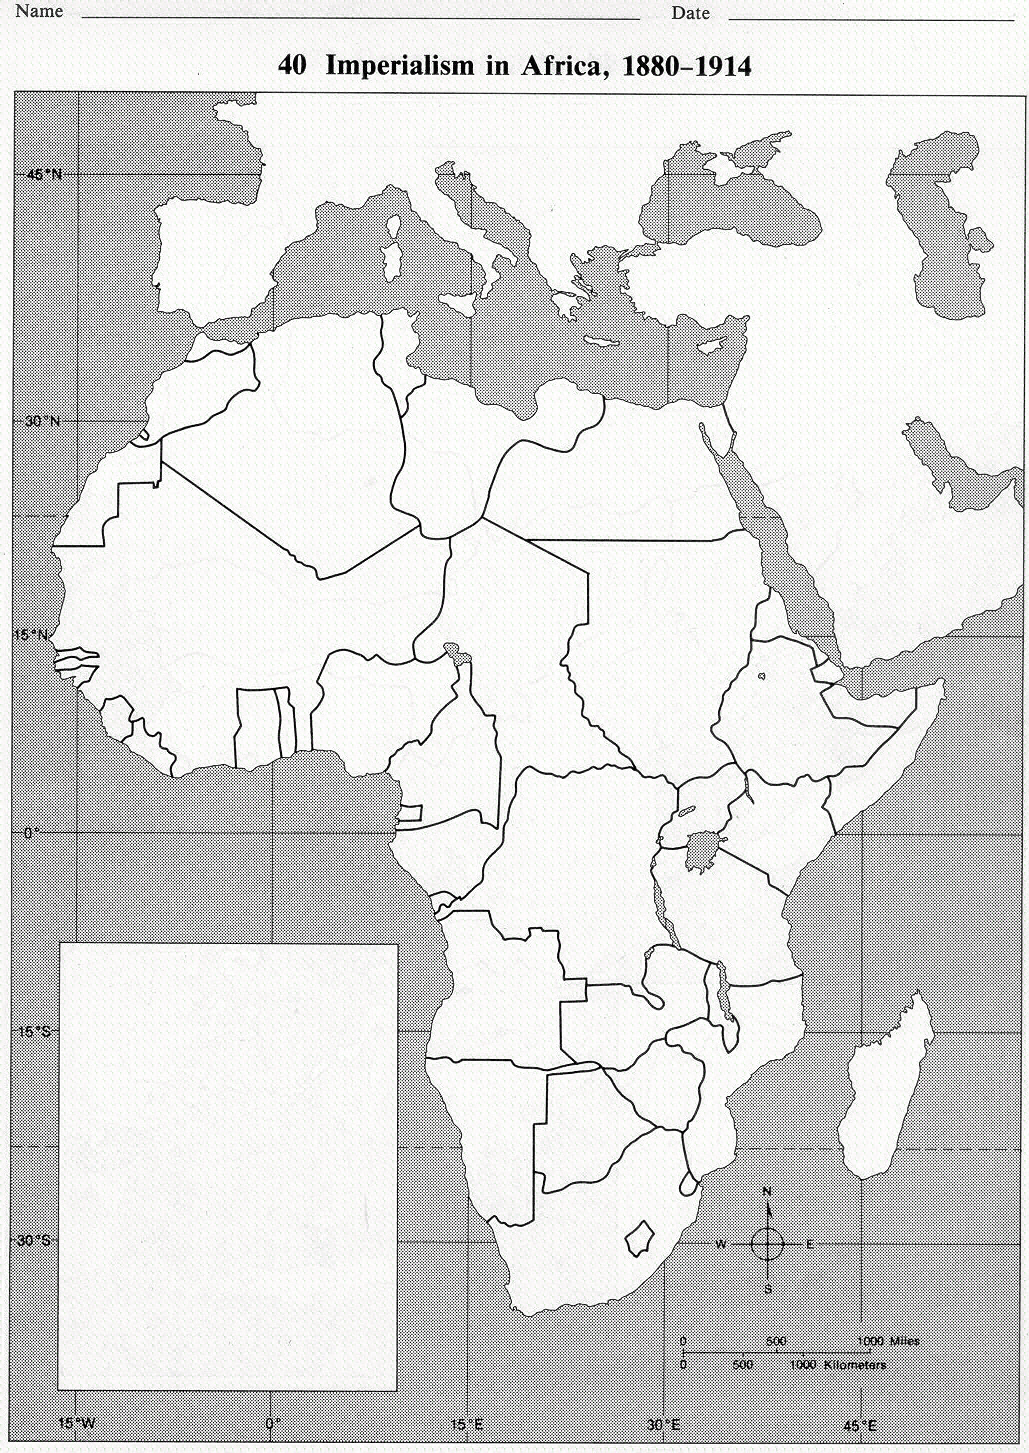 world history mr hilbert s history class european imperialism in africa map jpeg instructions in imperial packet